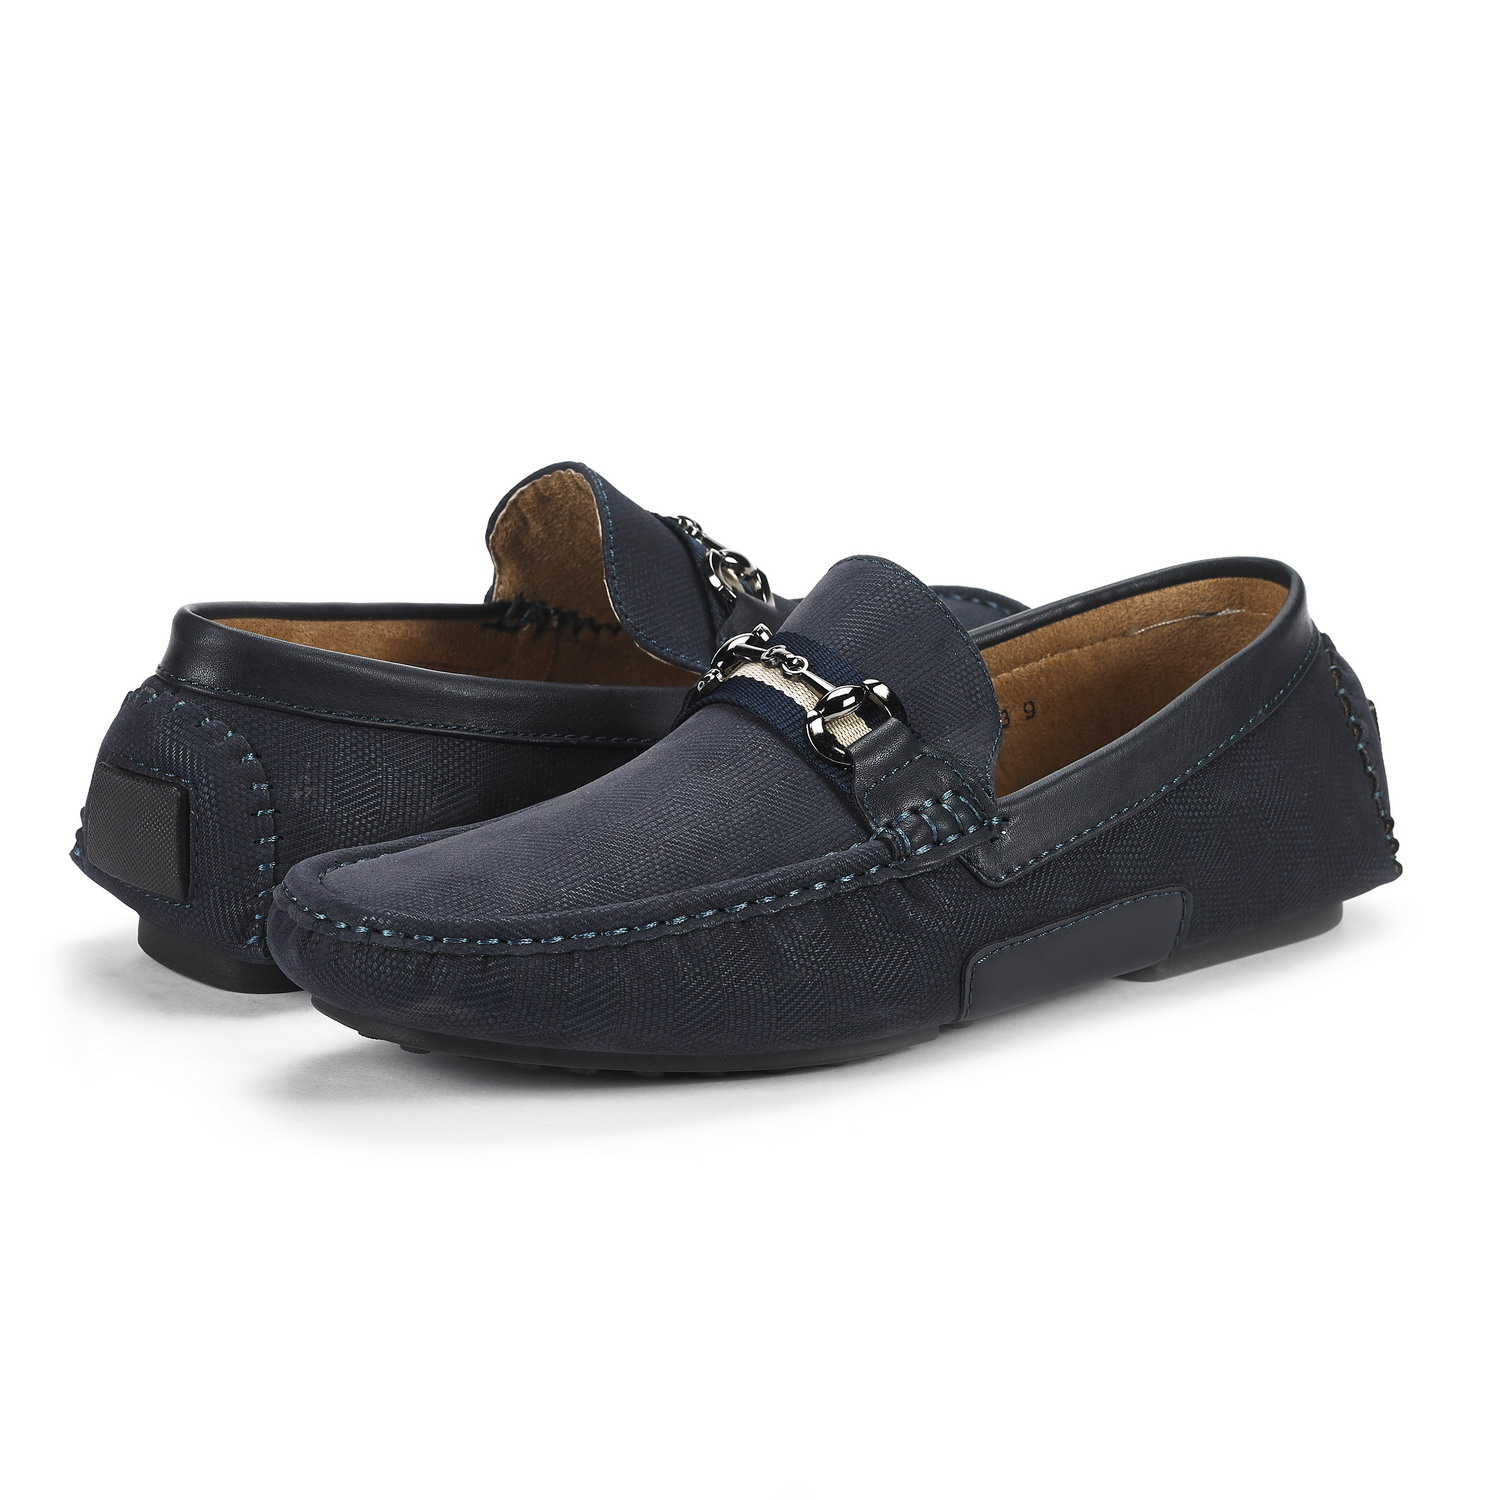 Bruno-Marc-Mens-Casual-Driving-Antiskid-Loafers-Leather-Slip-On-Moccasins-Shoes thumbnail 25